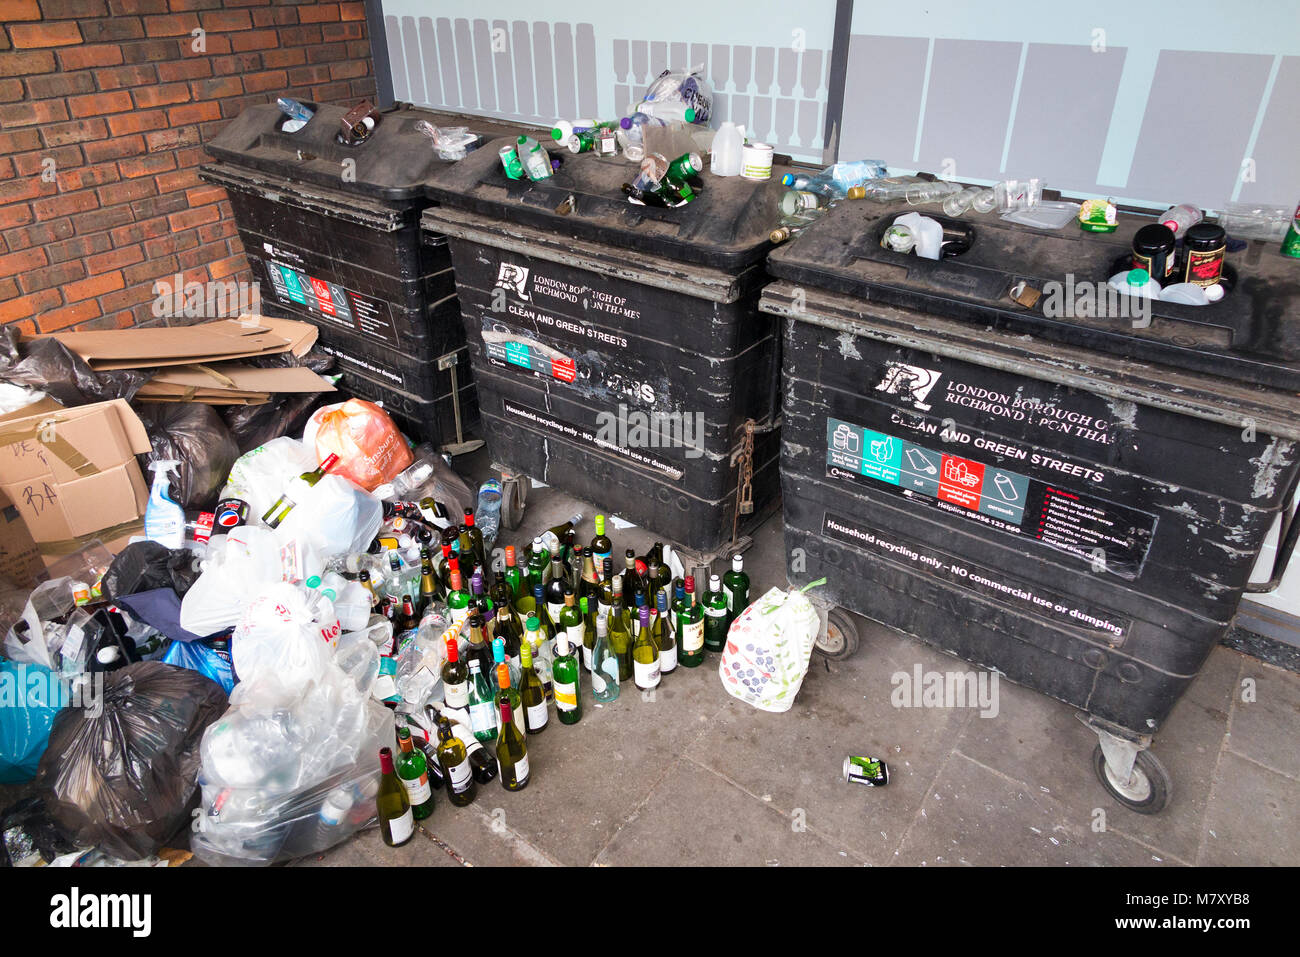 Full and overflowing / over flowing glass bottle banks and recycling skips outside a supermarket in Twickenham, - Stock Image